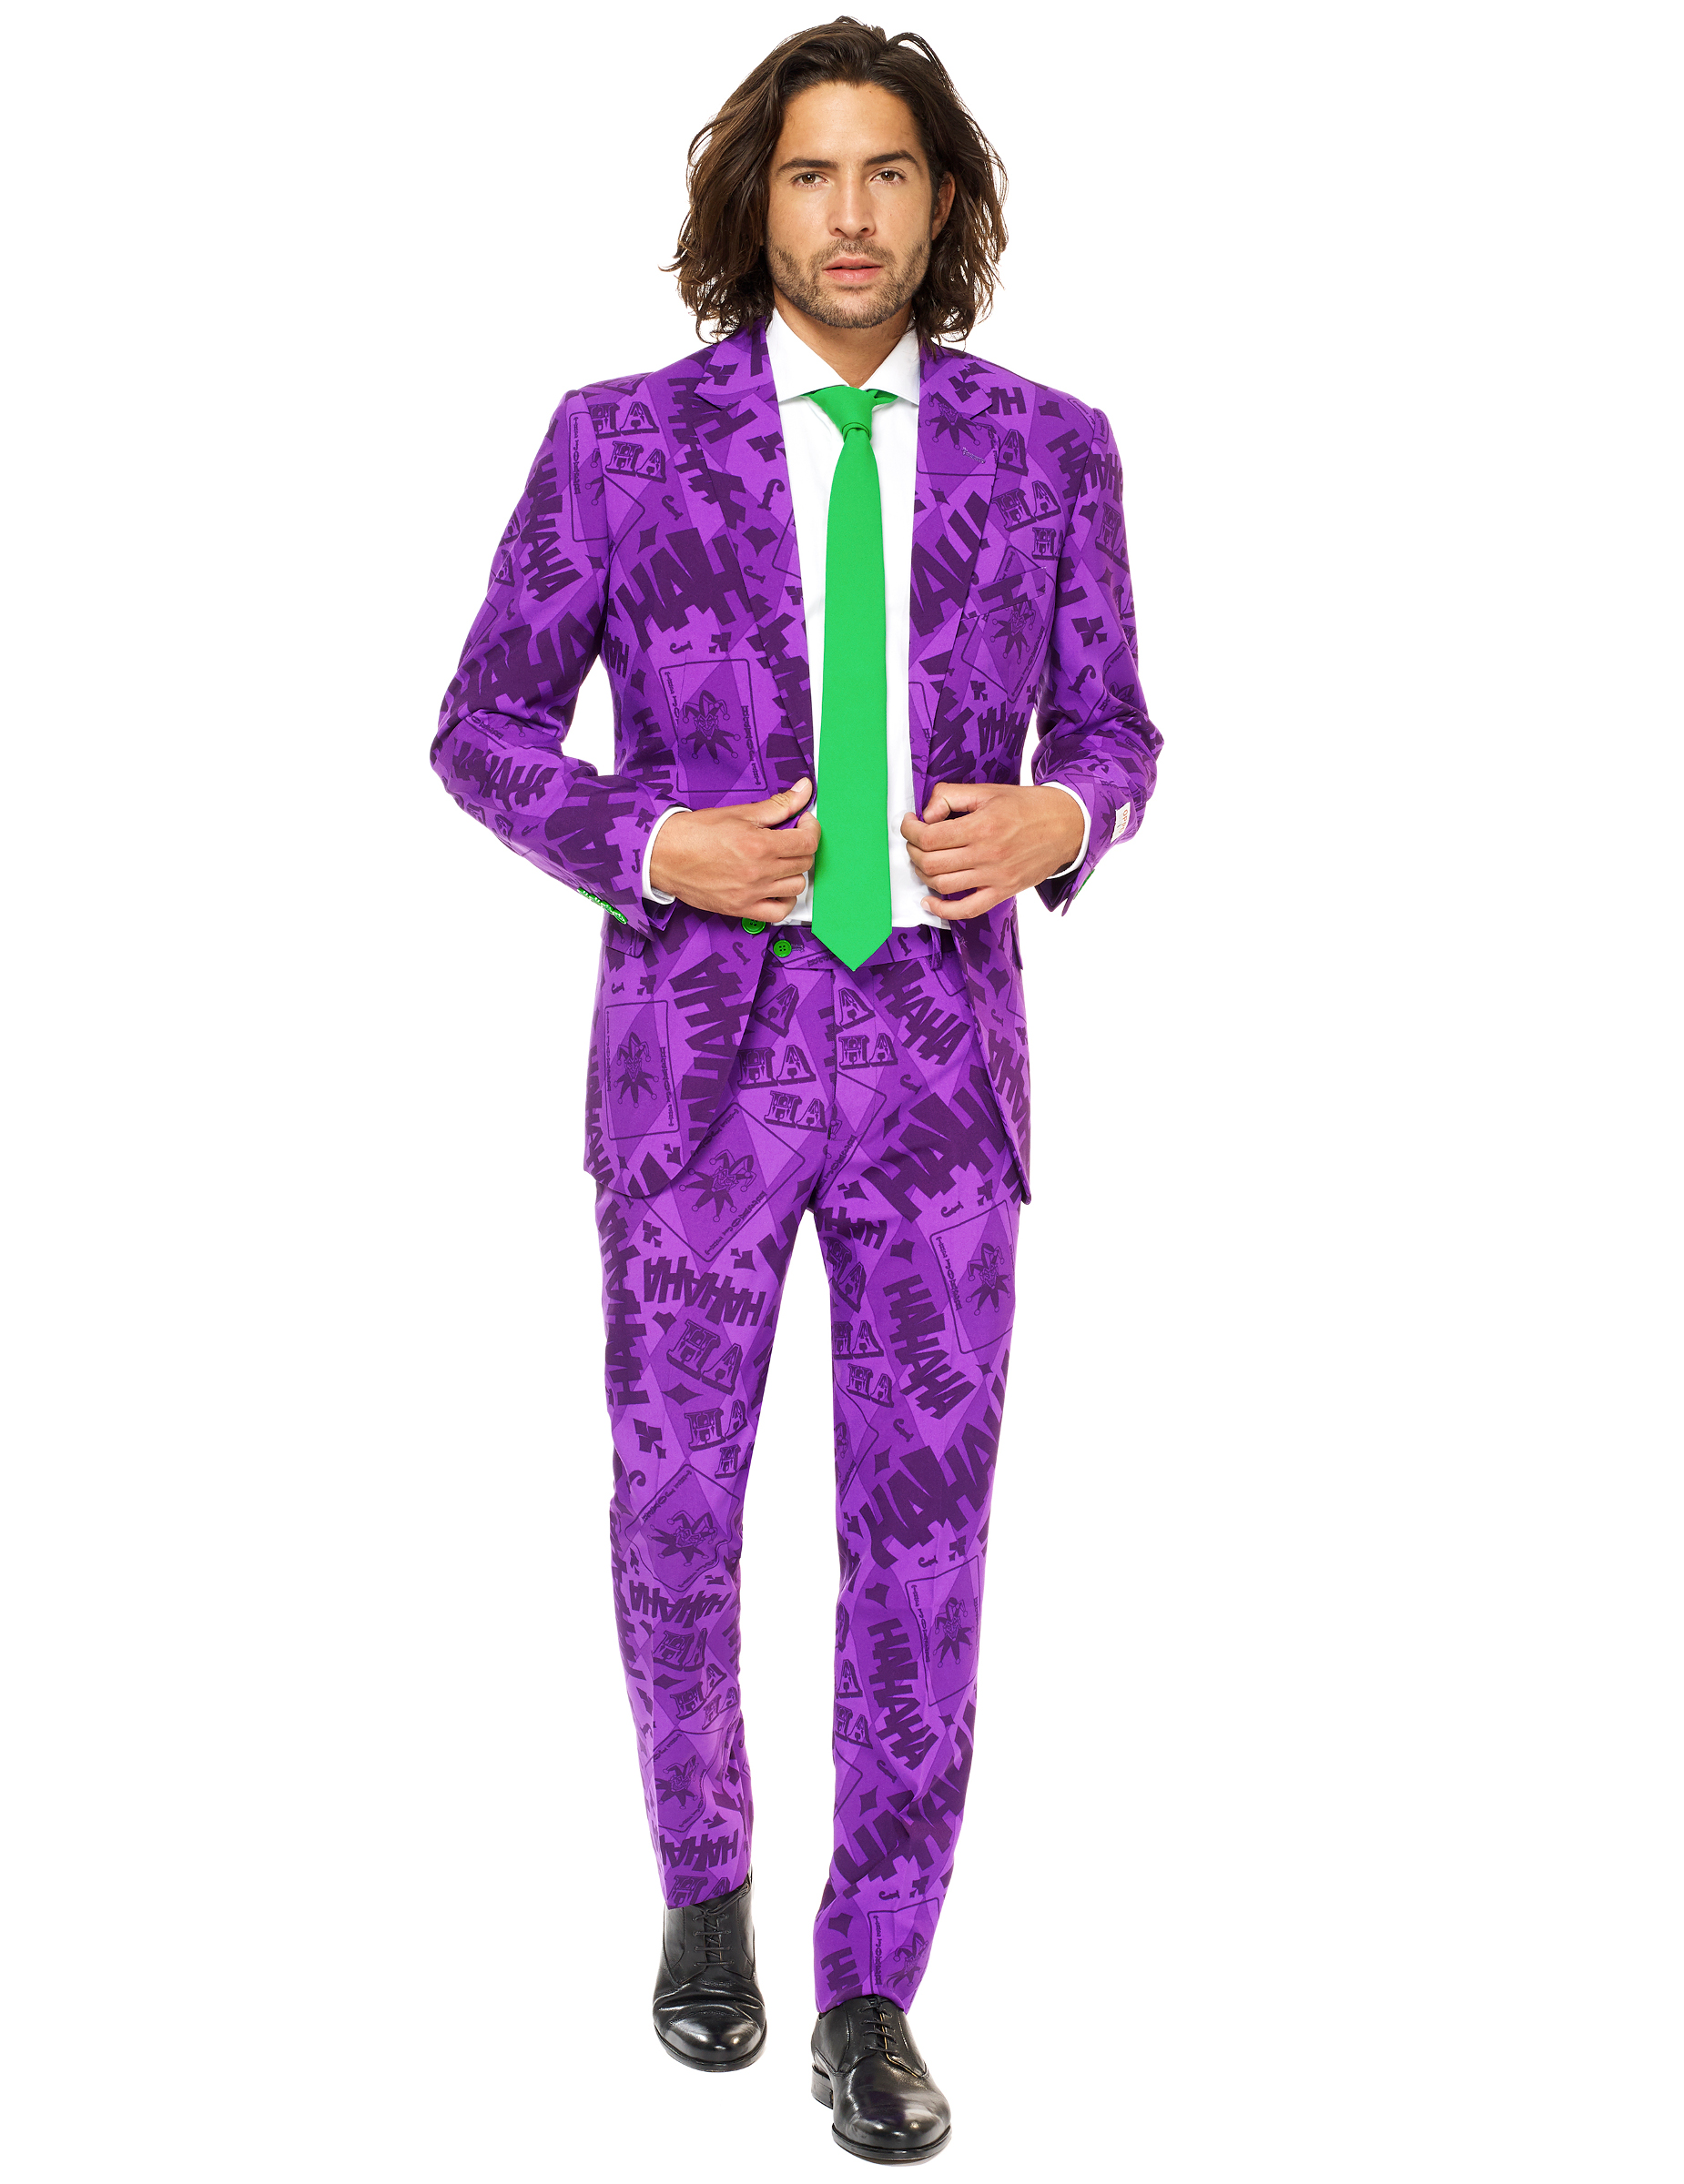 costume mr joker homme opposuits deguise toi achat de d guisements adultes. Black Bedroom Furniture Sets. Home Design Ideas